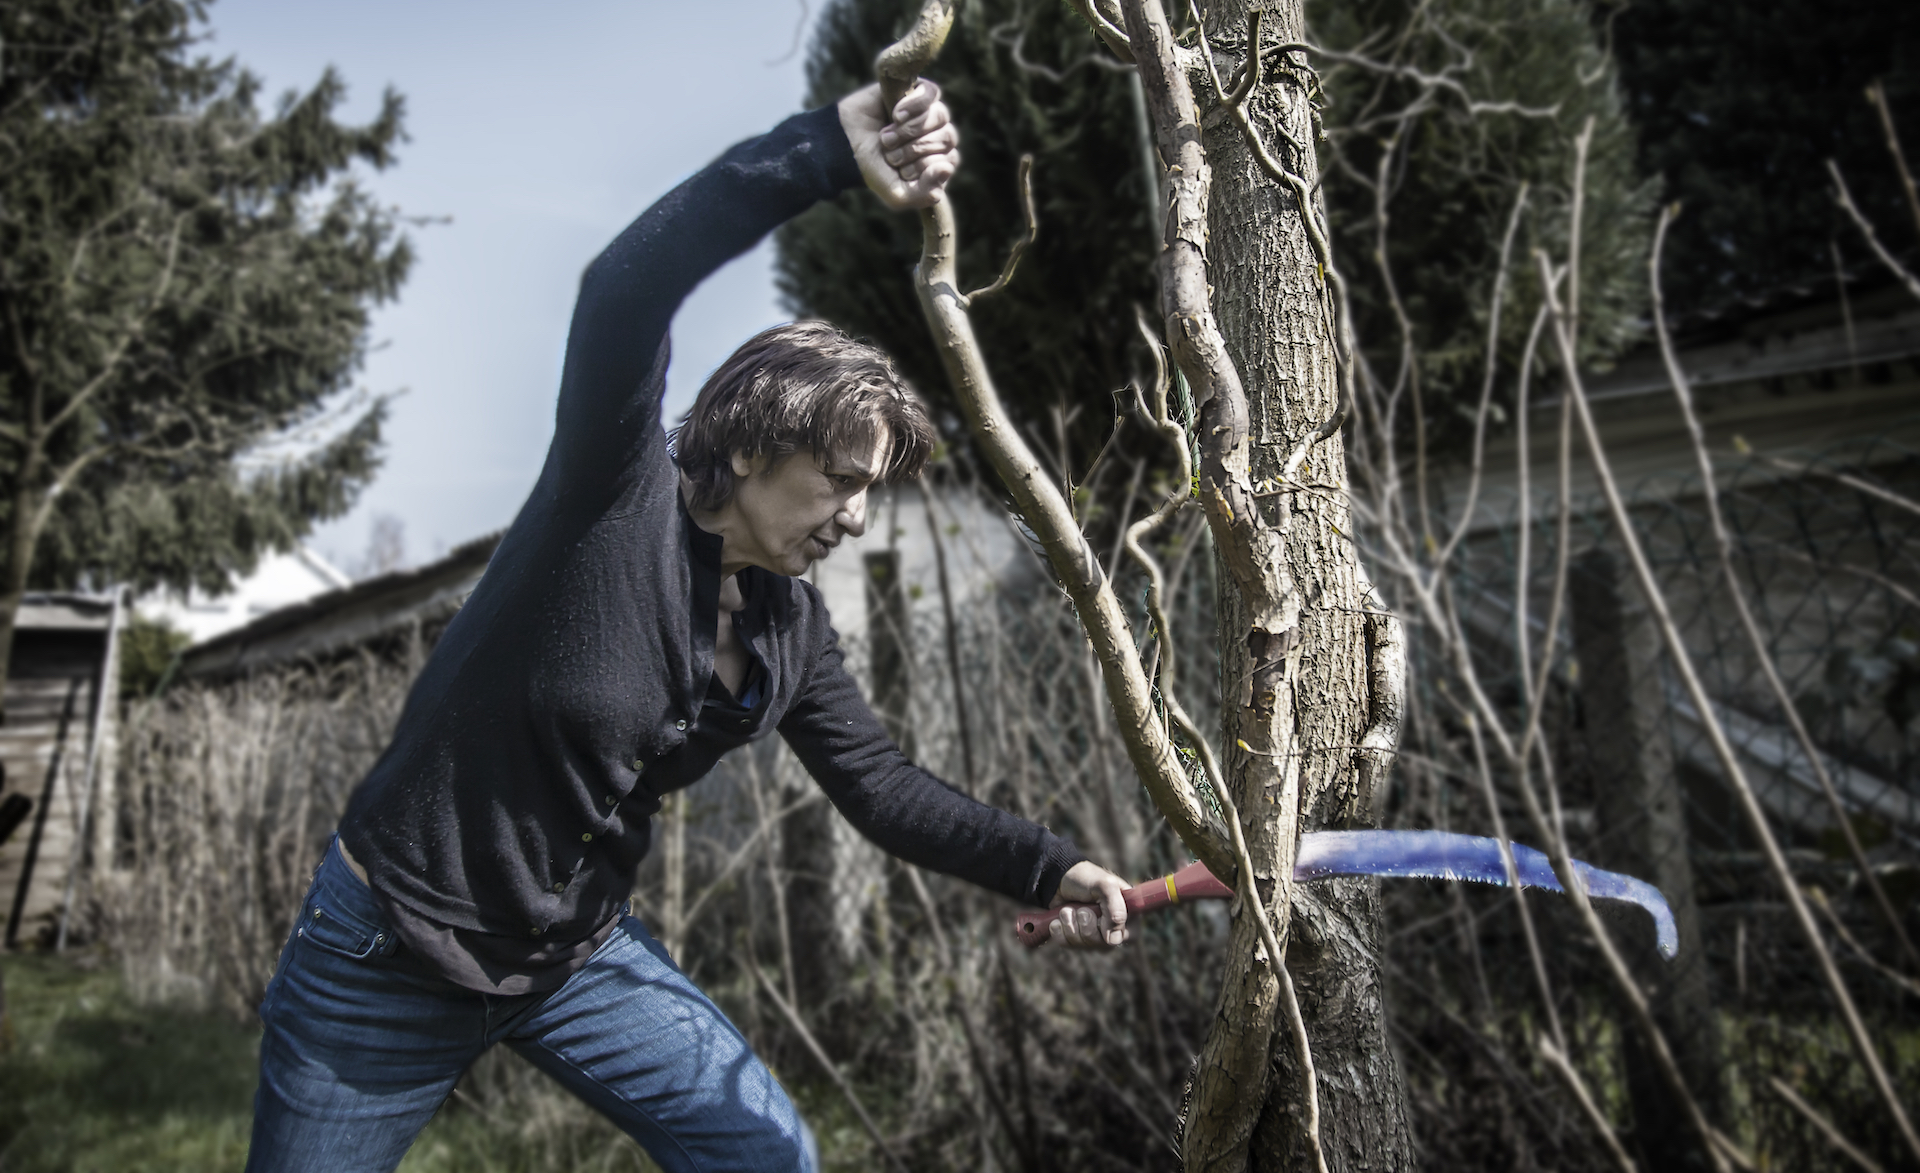 Woman saws a tree branch